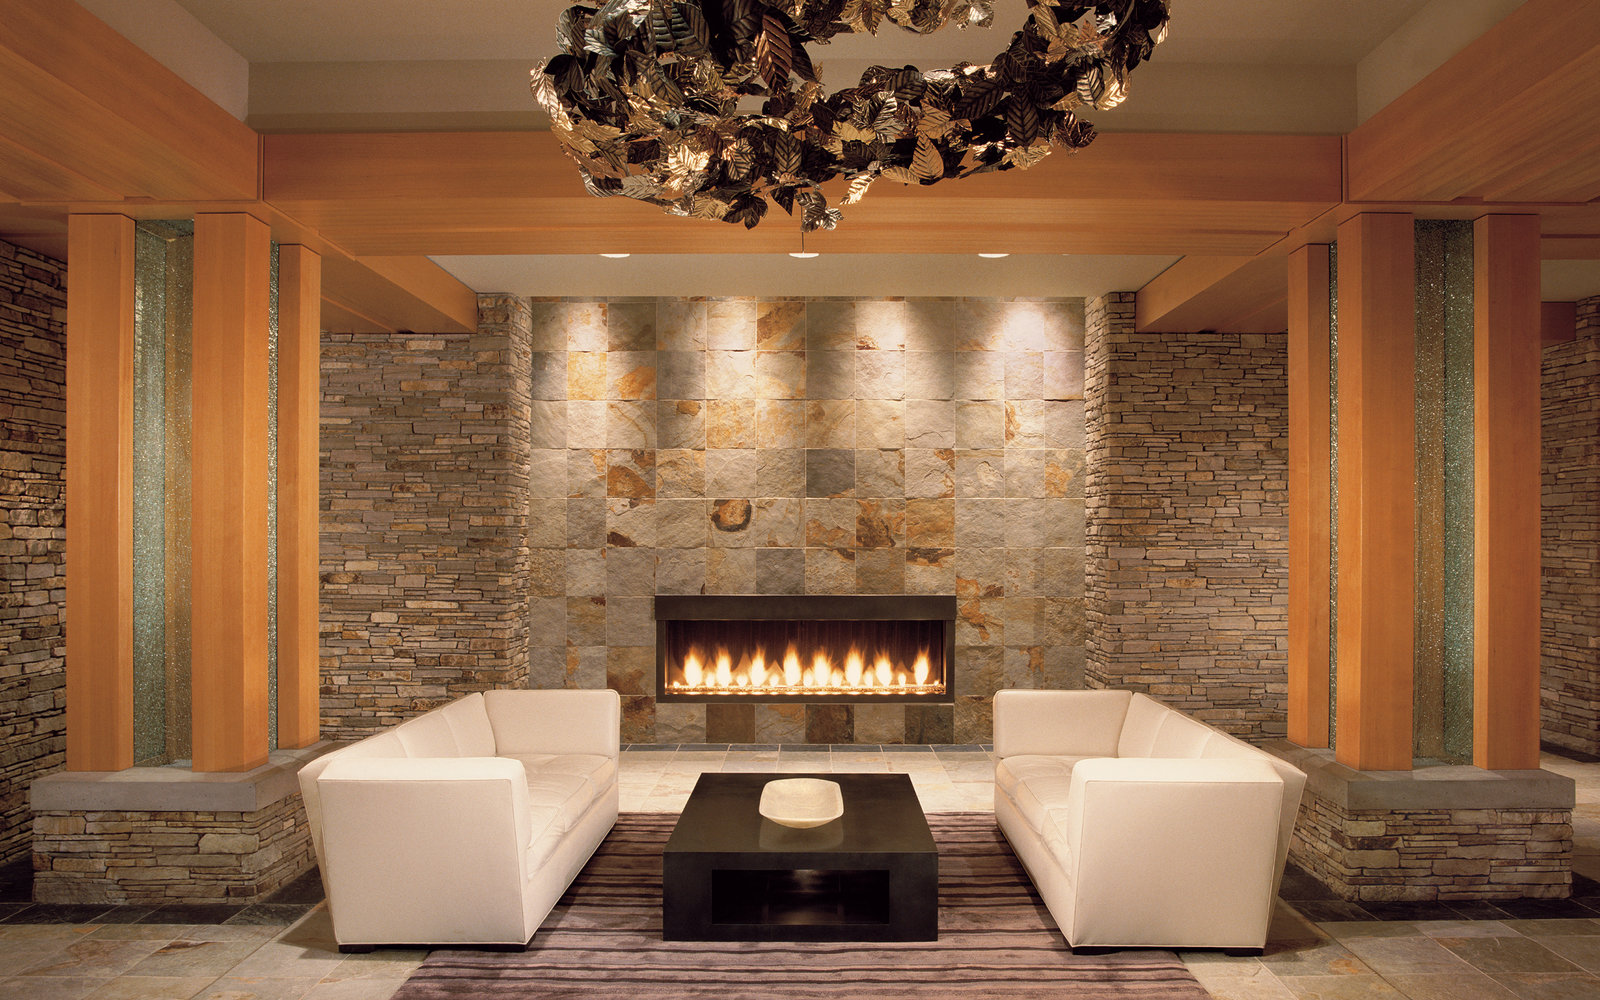 Four Seasons Resort and Residences Whistler